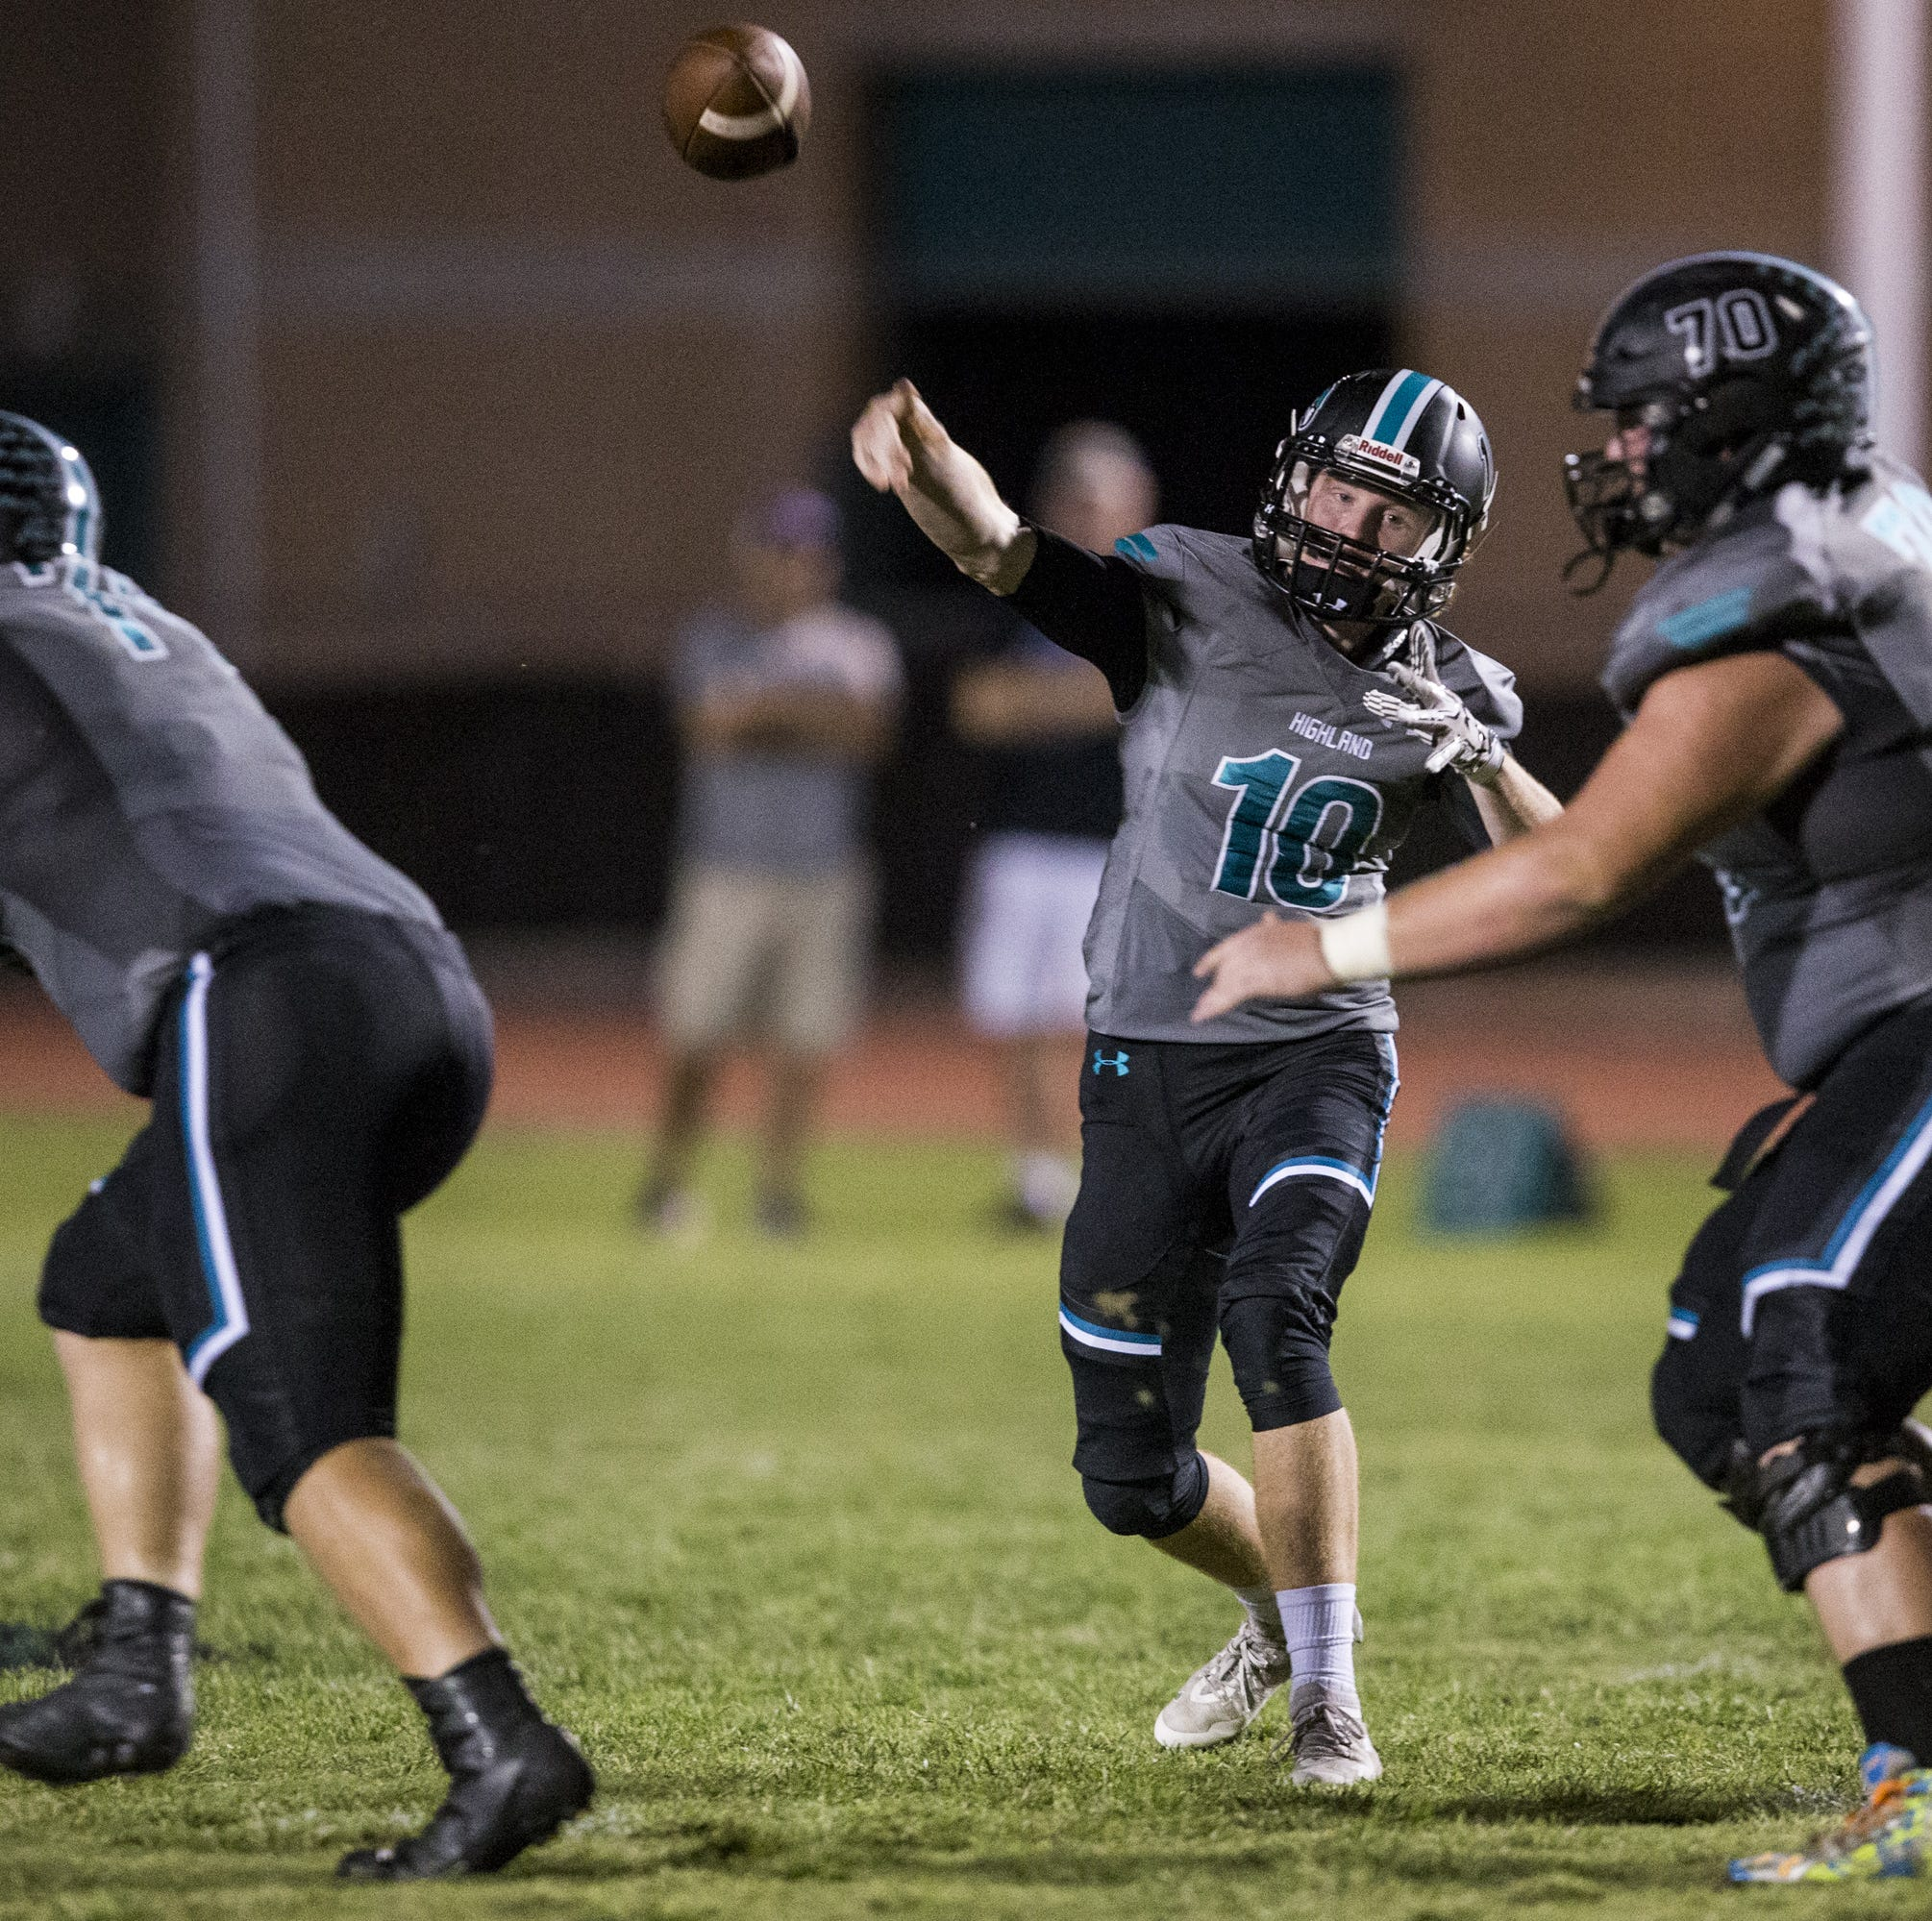 Highland improves to 6-0 with 'FitzMagic' rubbing off